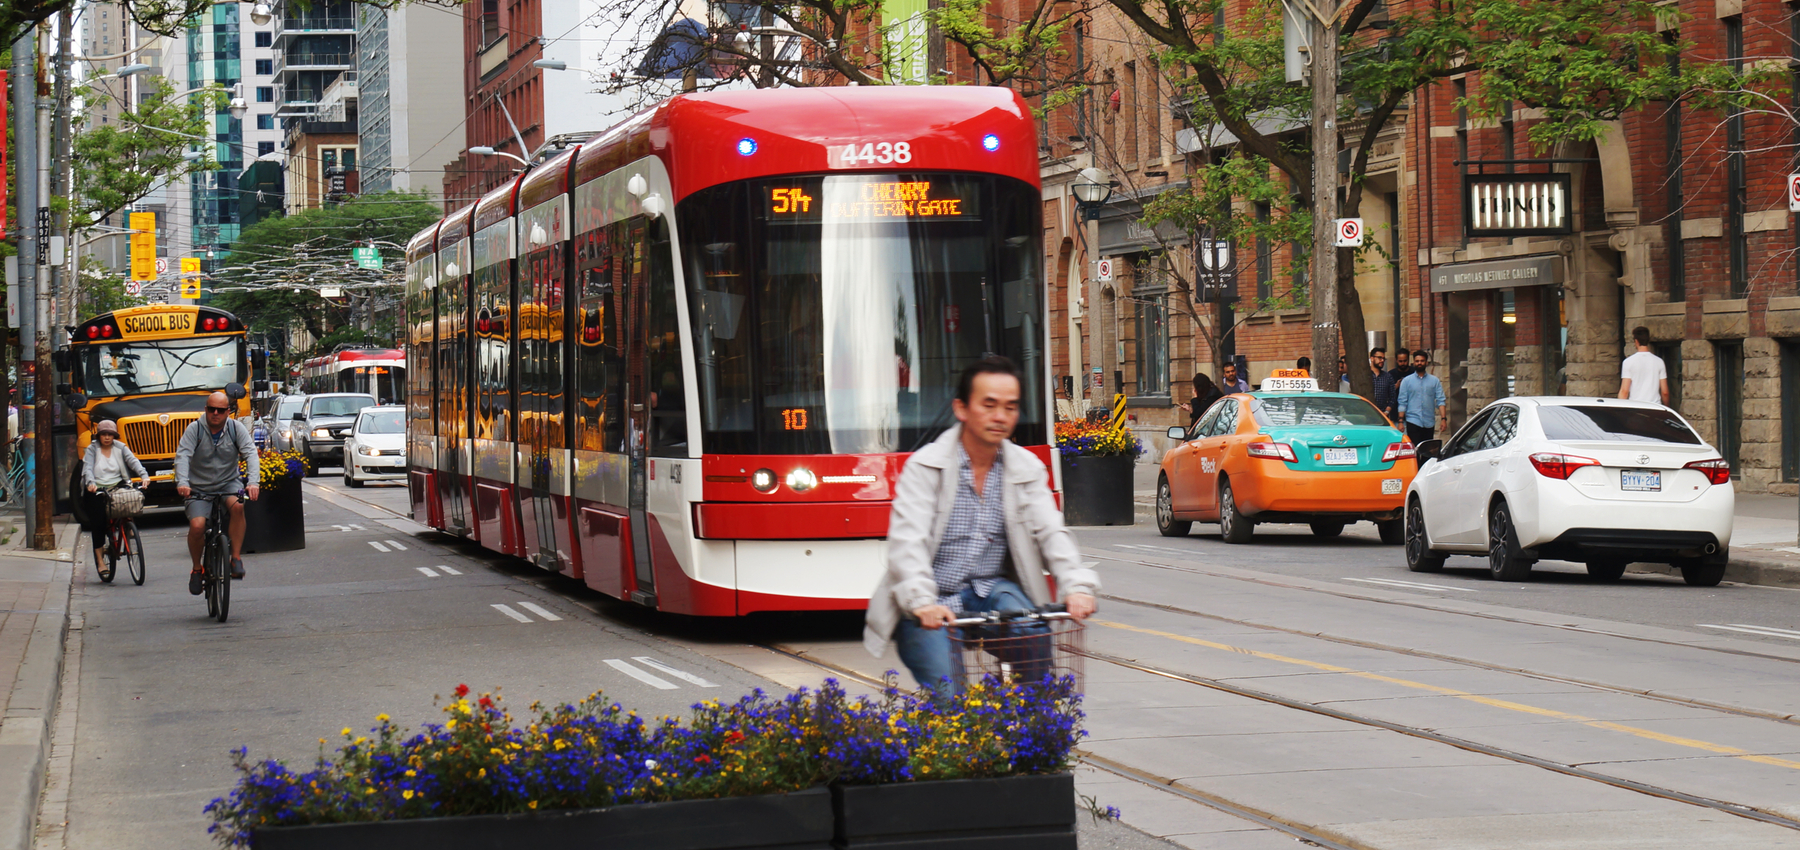 Getting around: How to use public transportation in Toronto